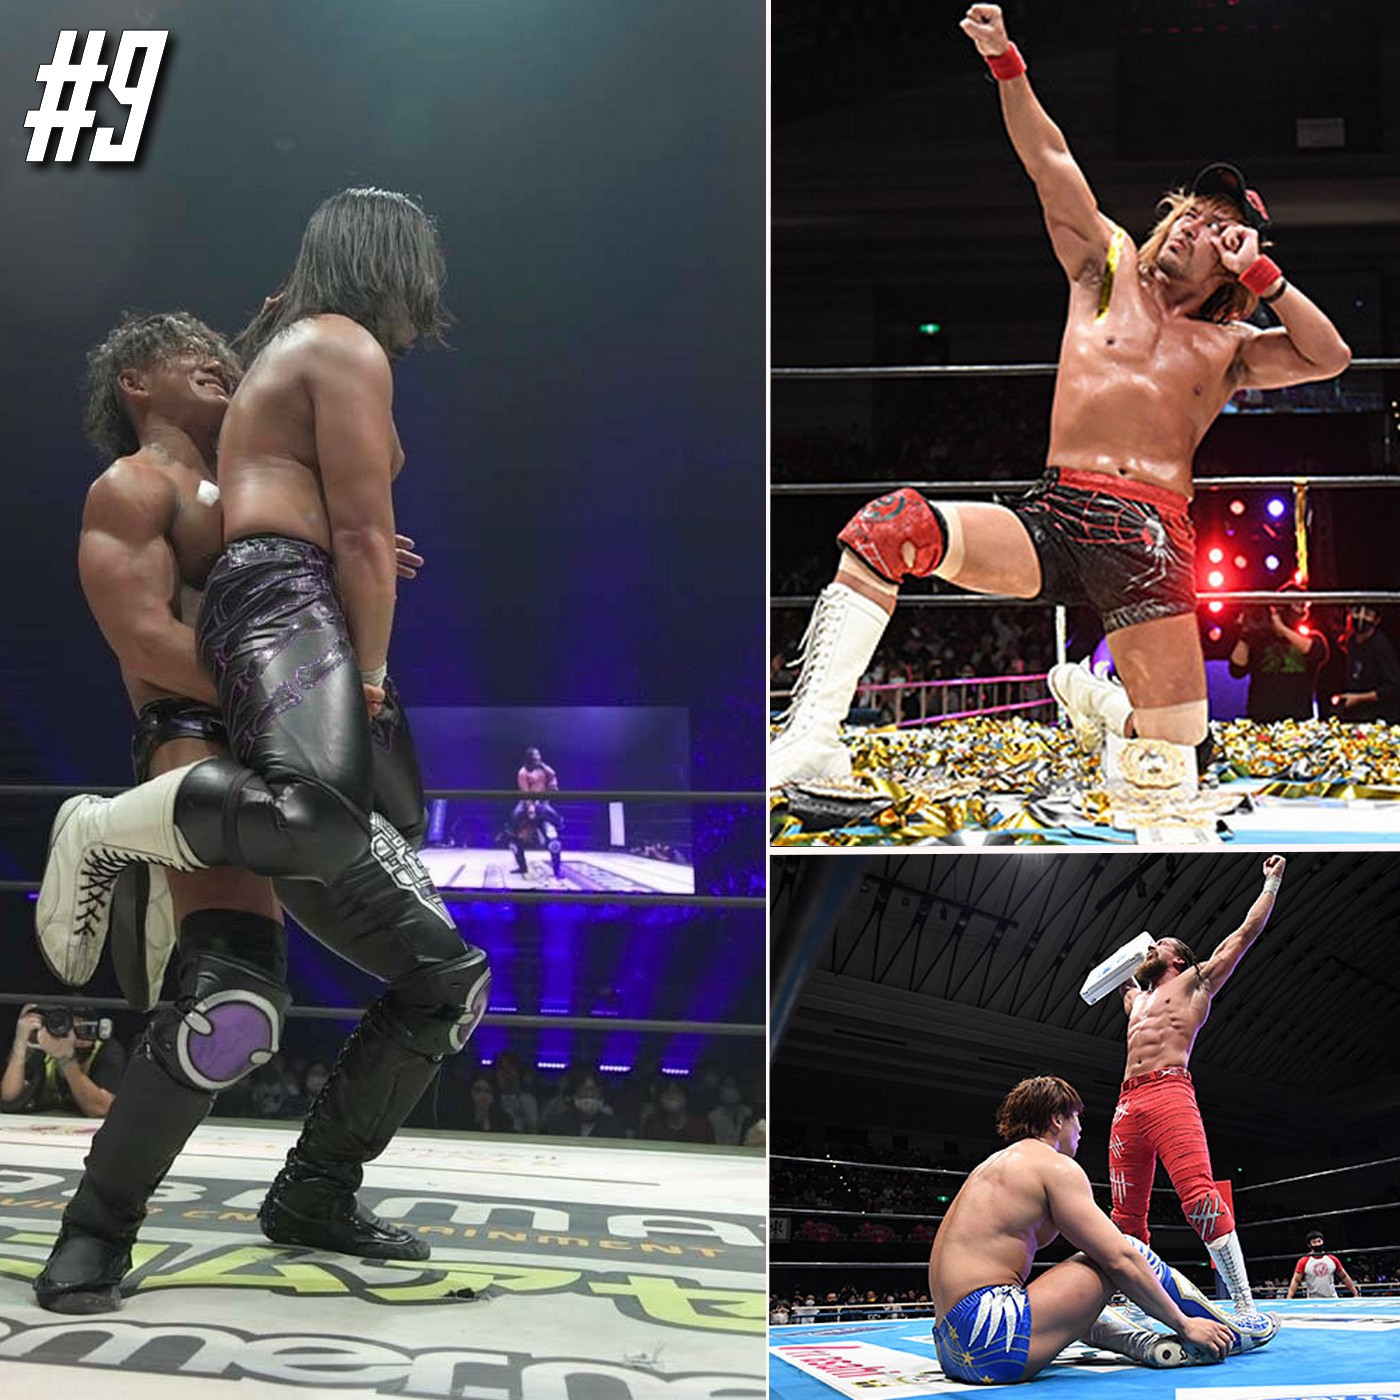 PuroMania #9 Review DDT ULTIMATE PARTY 2020 & NJPW POWER STRUGGLE